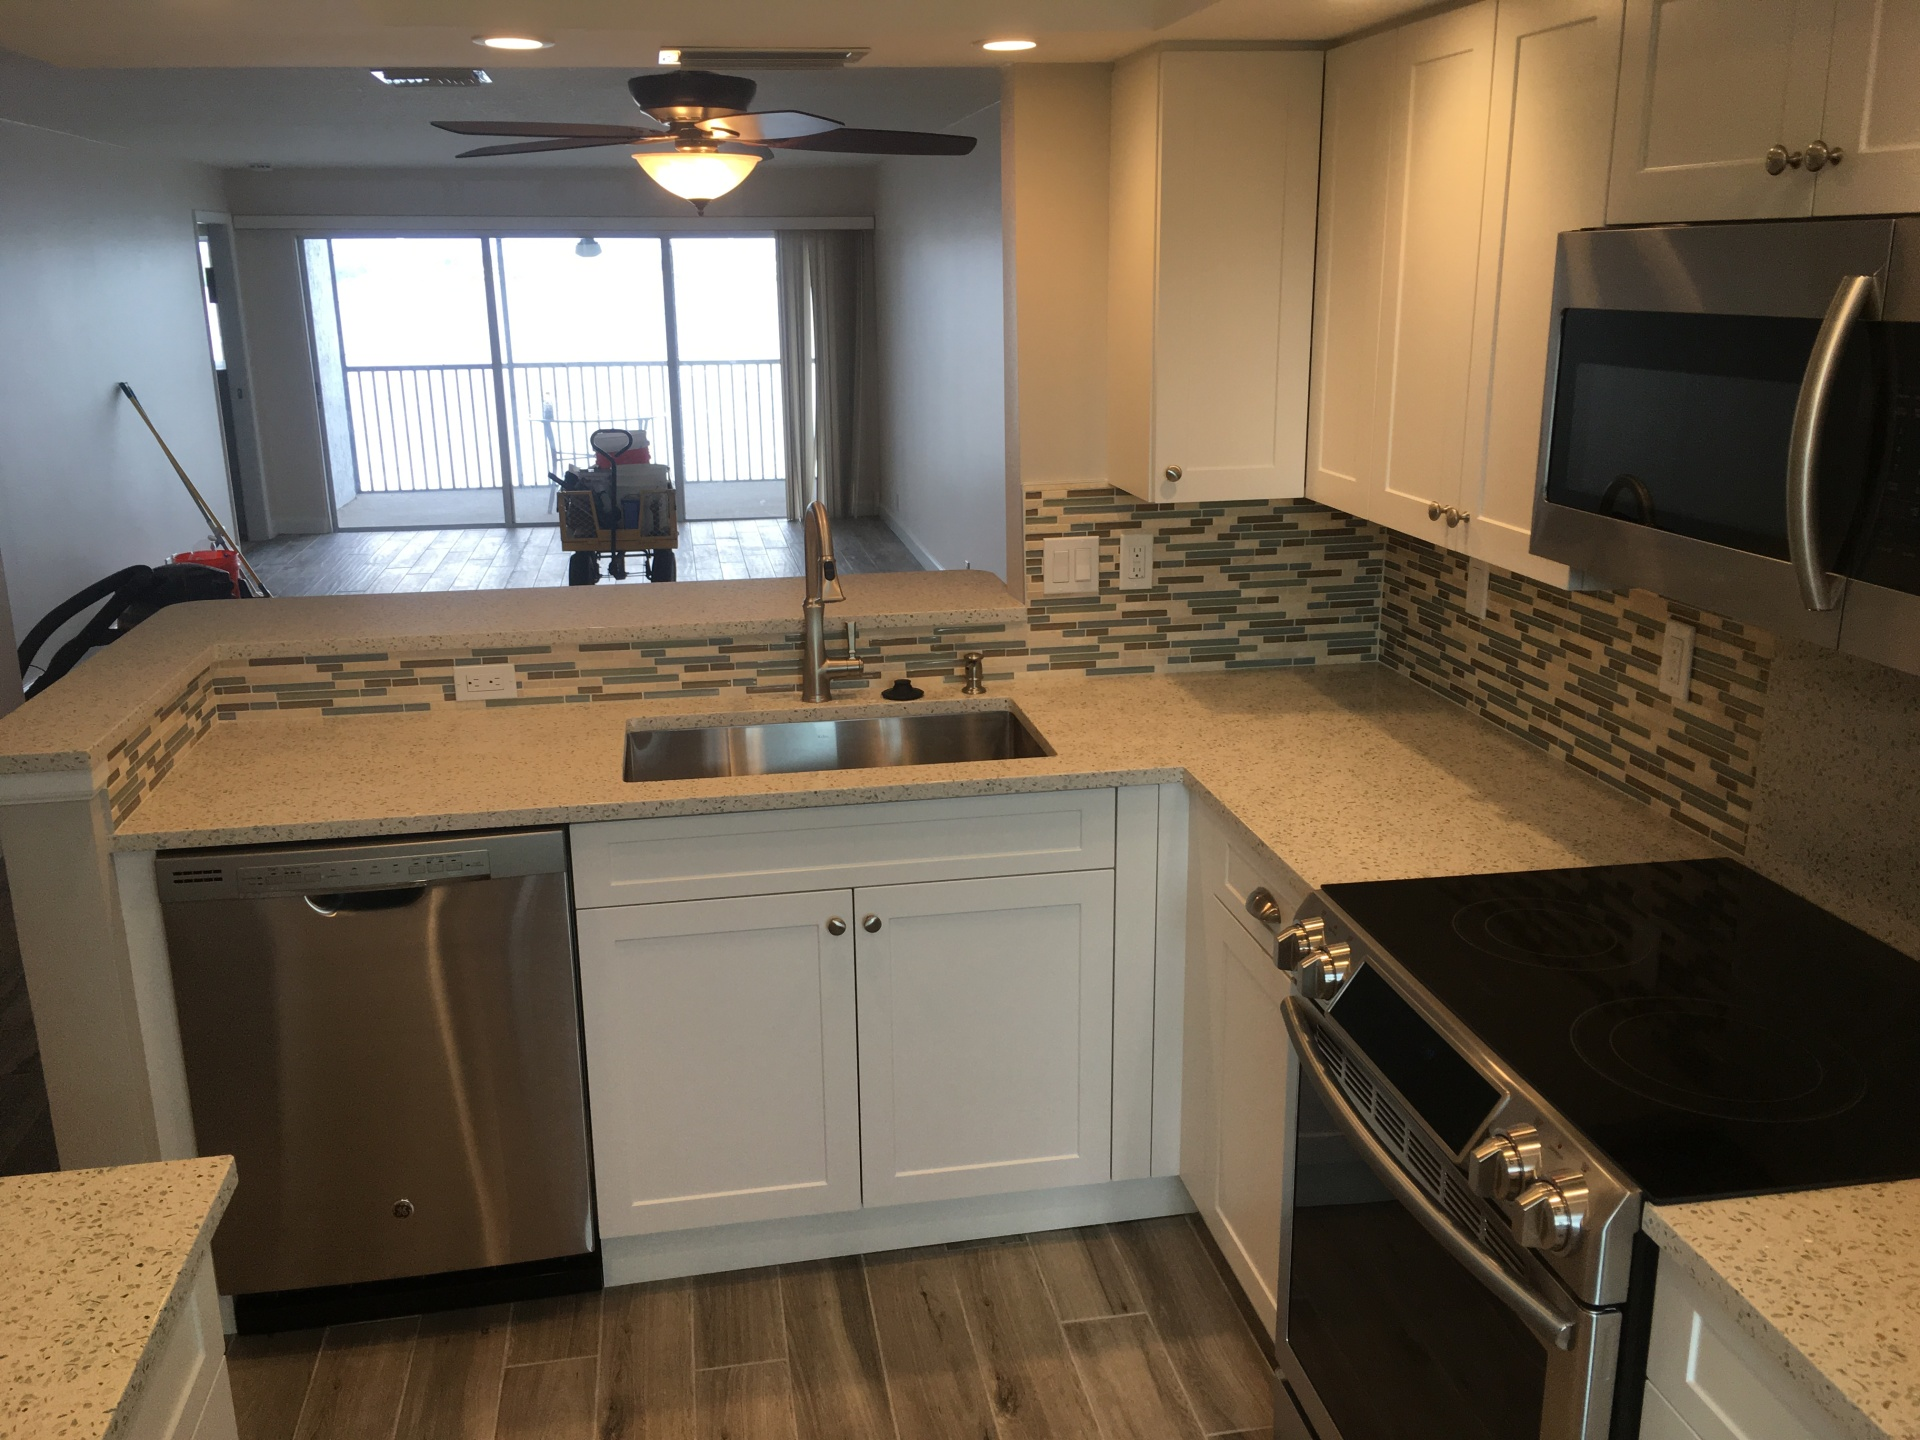 Beach condo kitchen remodel on Siesta Key.